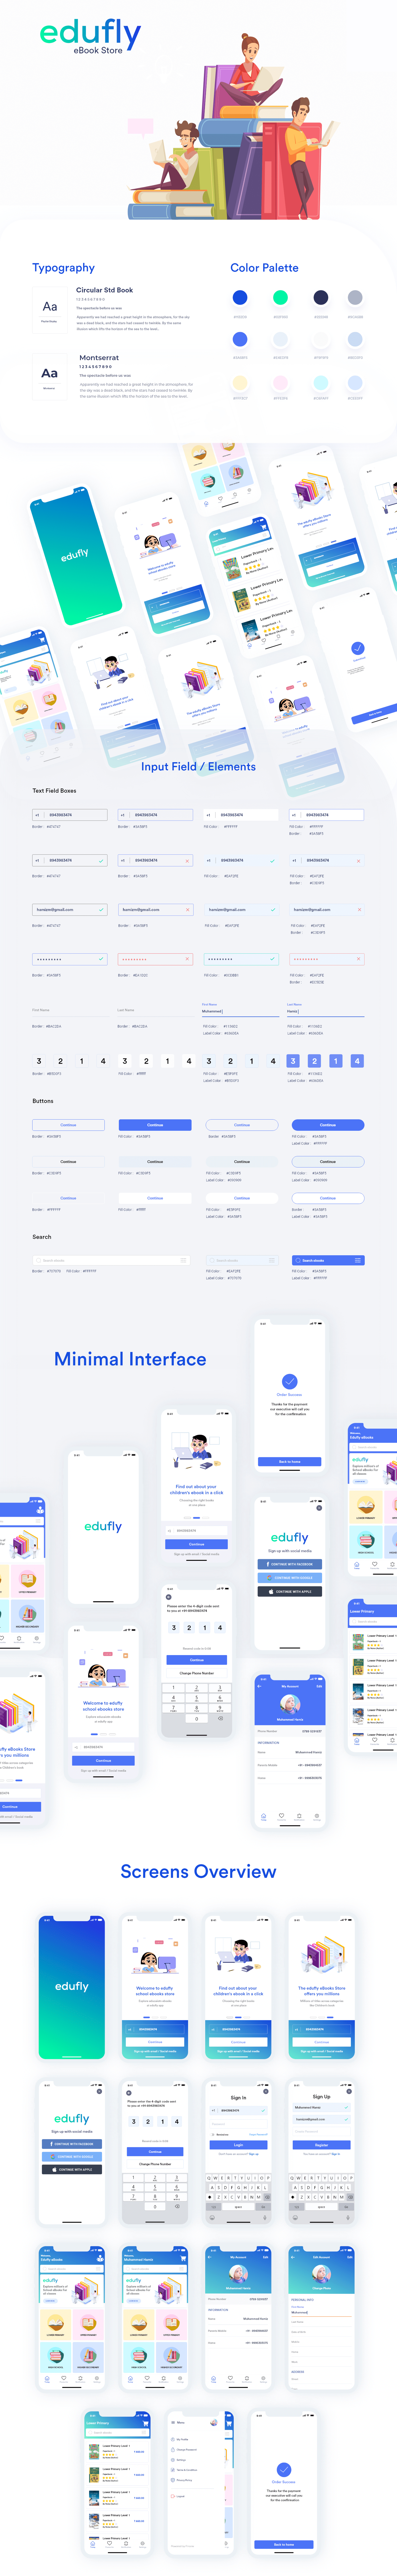 Edufly - Online eBook Store UI Kit for Adobe XD - Edufly is a iOS UI kit that helps create beautiful, minimal app UI using human-friendly design. This UI Kit will enable you to build almost any design with the out-of-the-box building blocks that is available in the edufly UI Design.